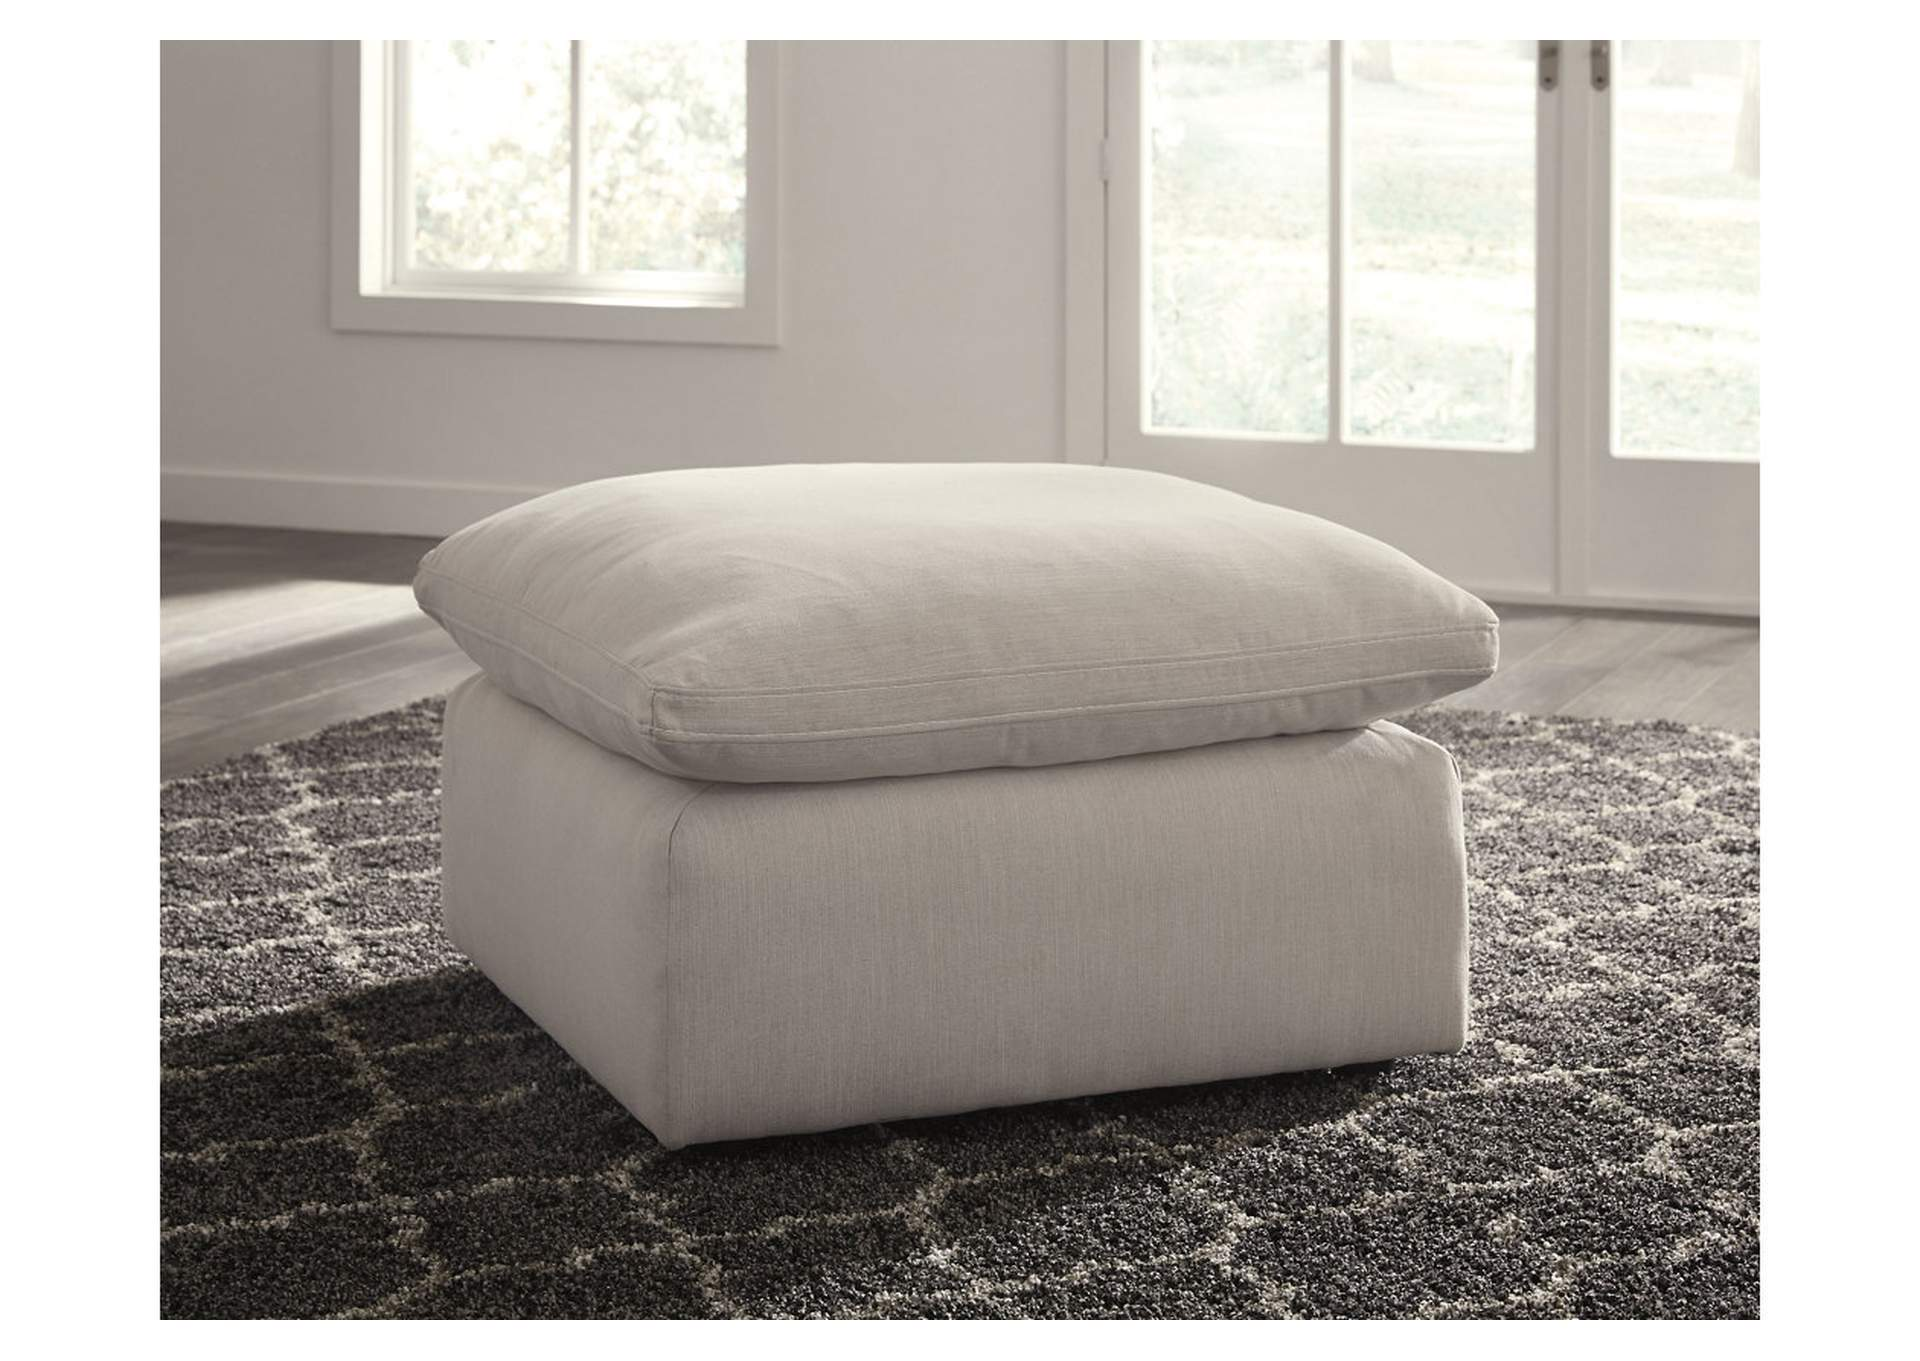 Savesto Ivory Oversized Accent Ottoman,Signature Design By Ashley